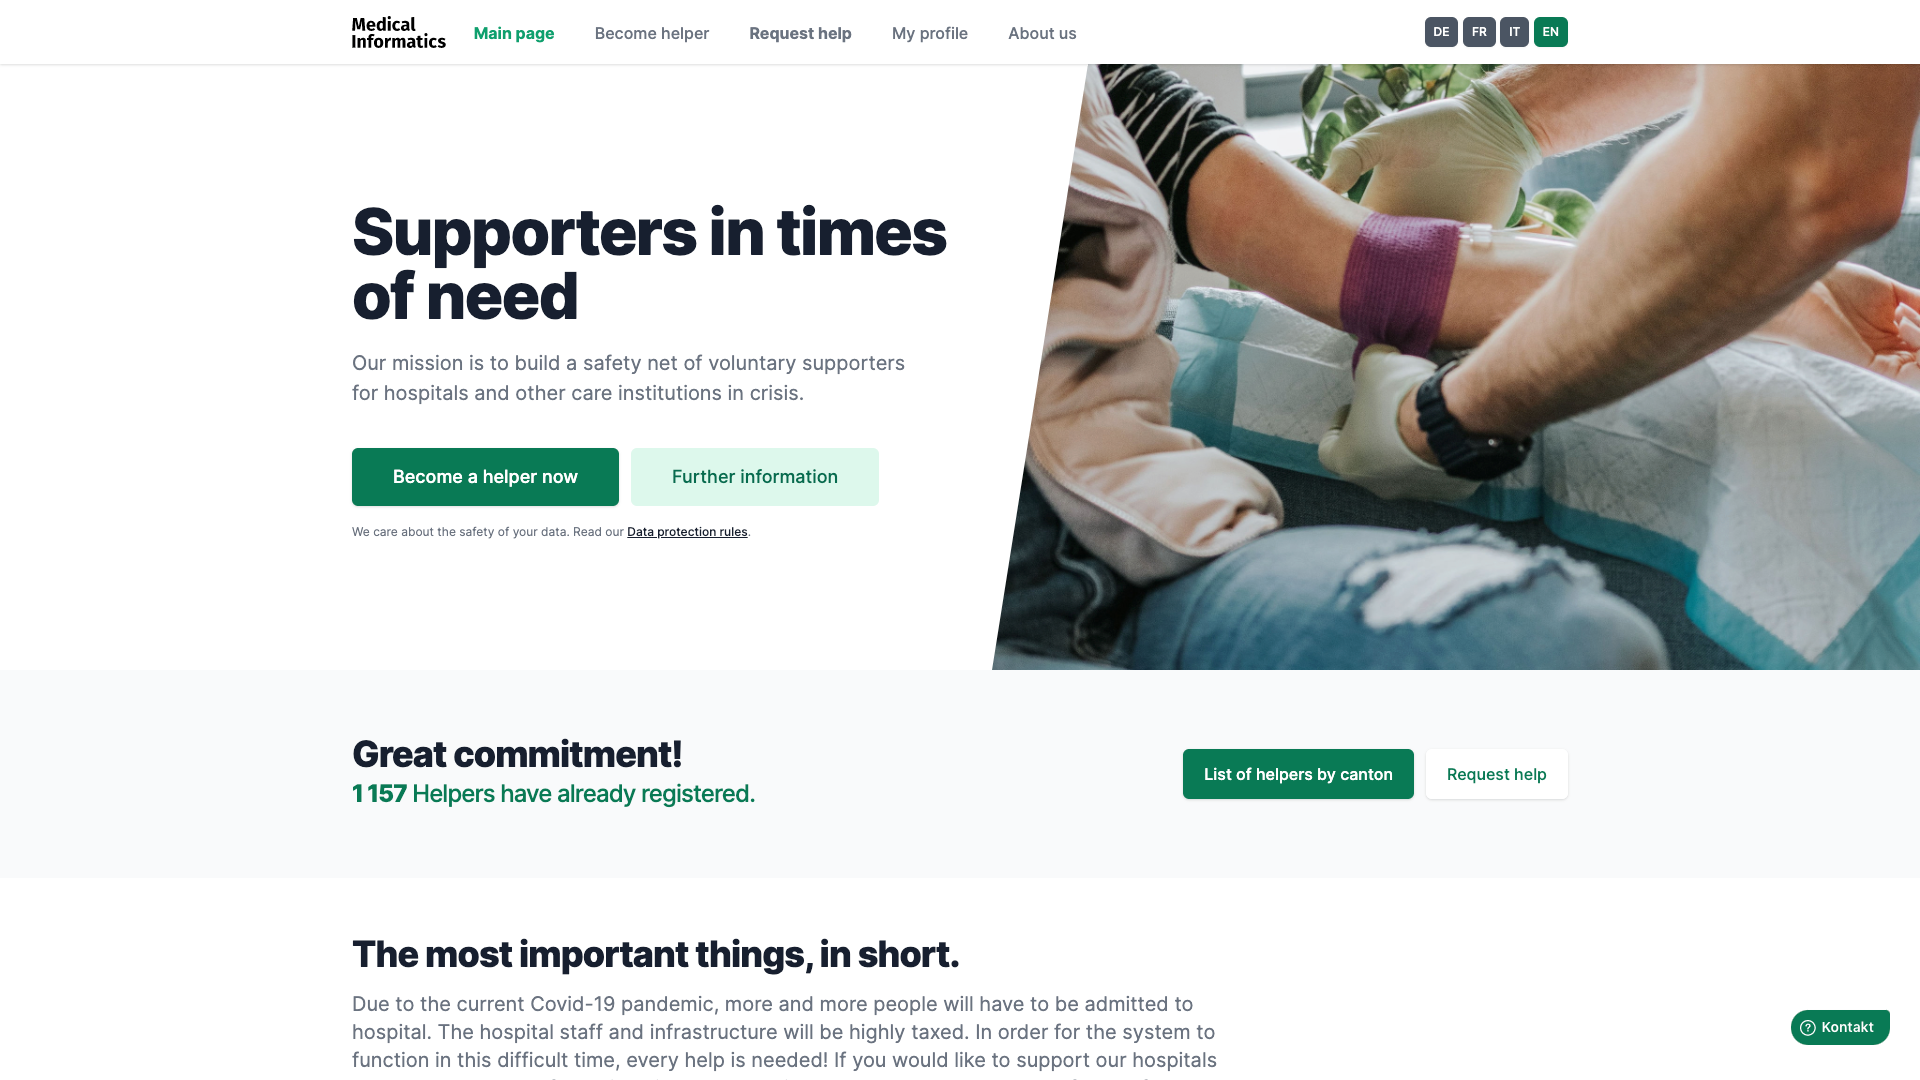 Supporters in times of need | Medical Informatics